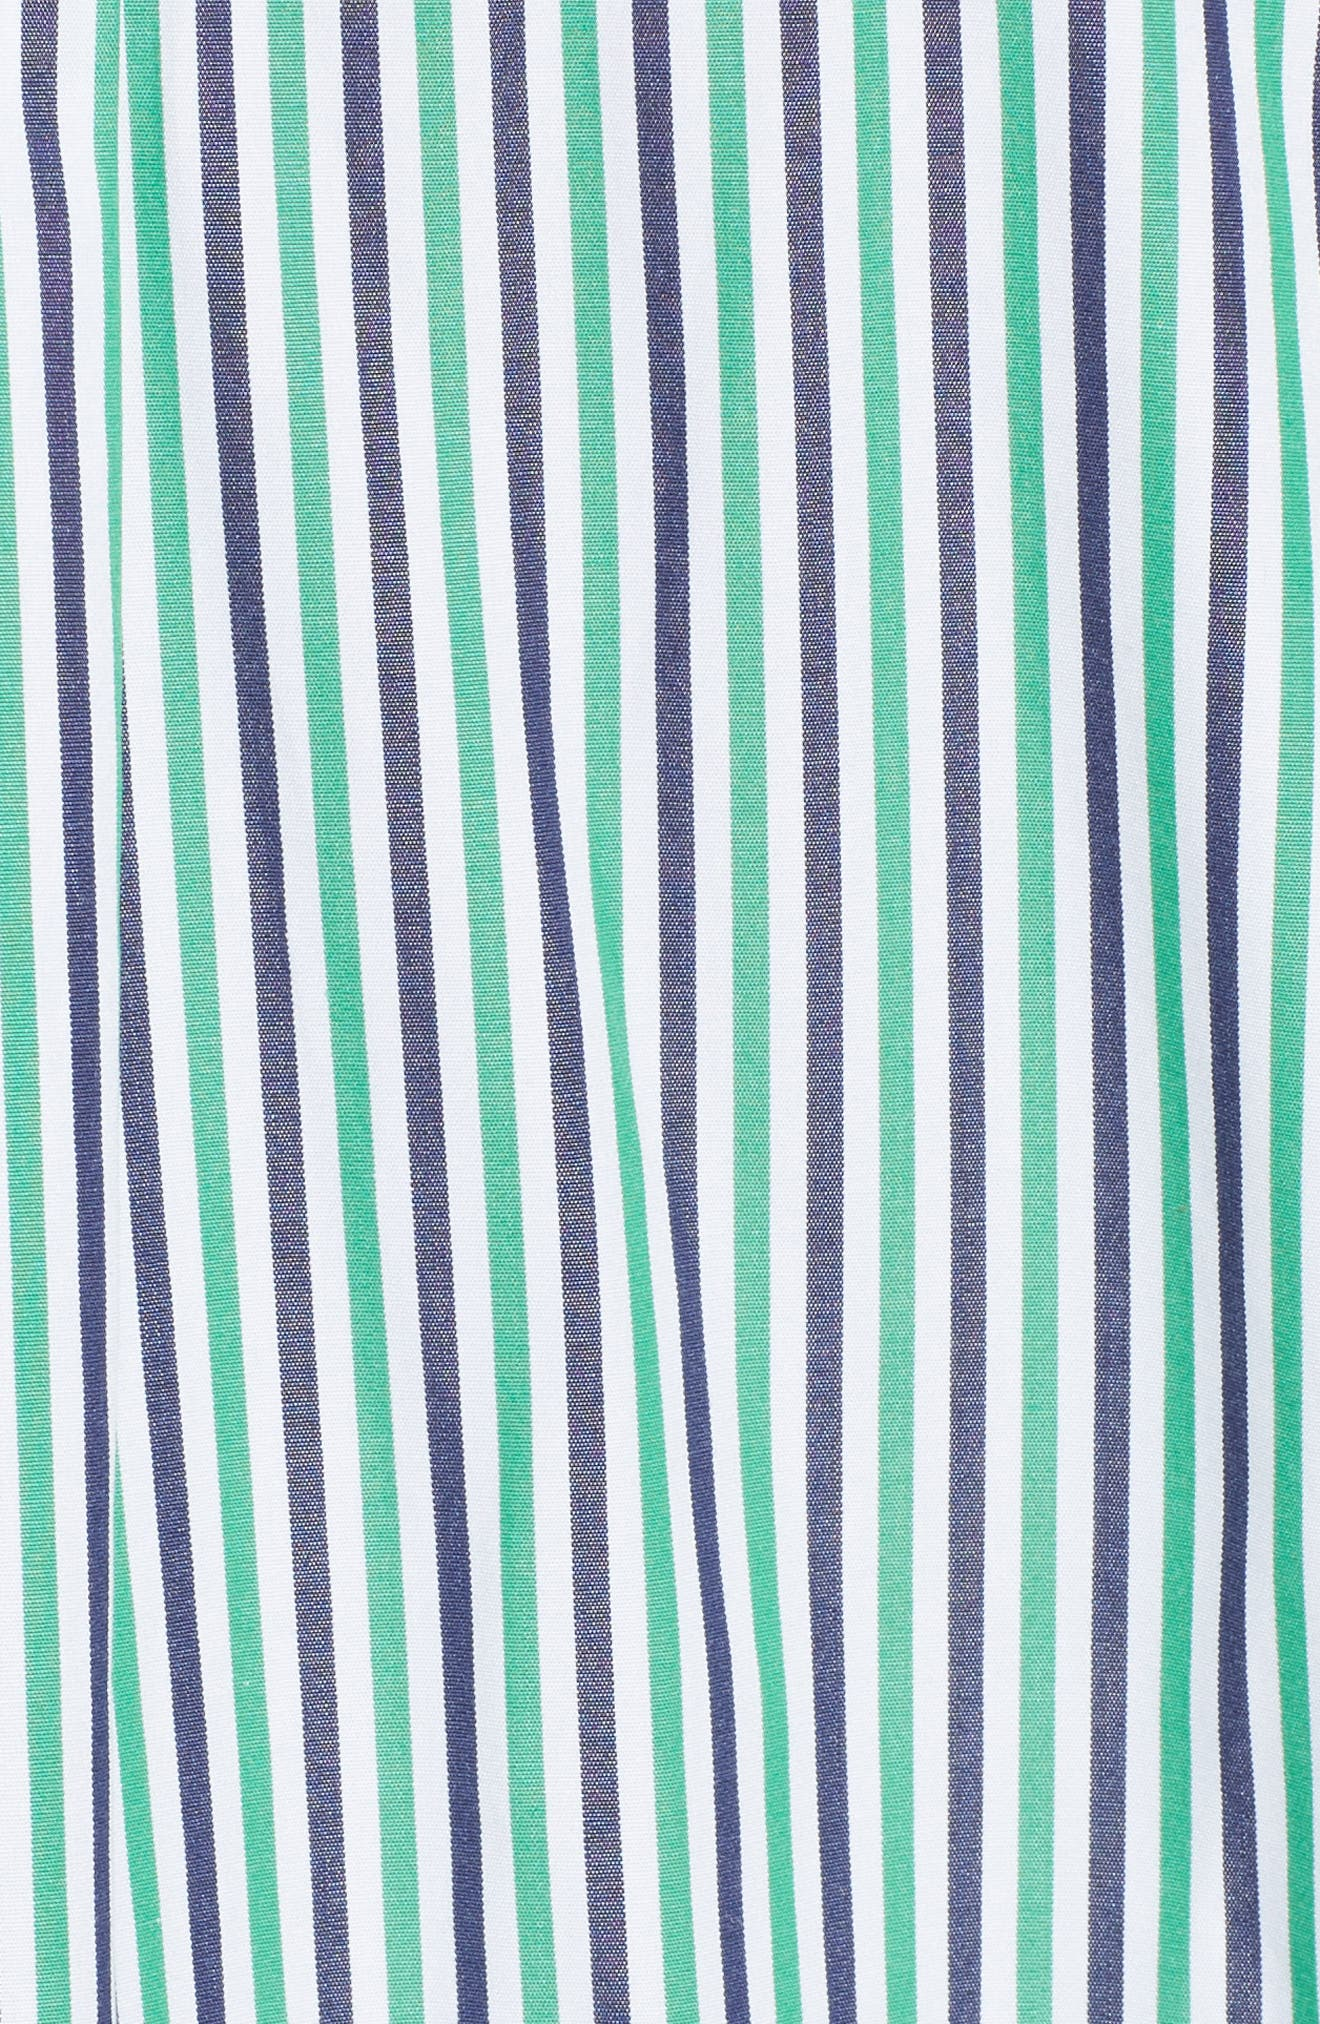 Fractured Stripe Shirt,                             Alternate thumbnail 6, color,                             Emerald